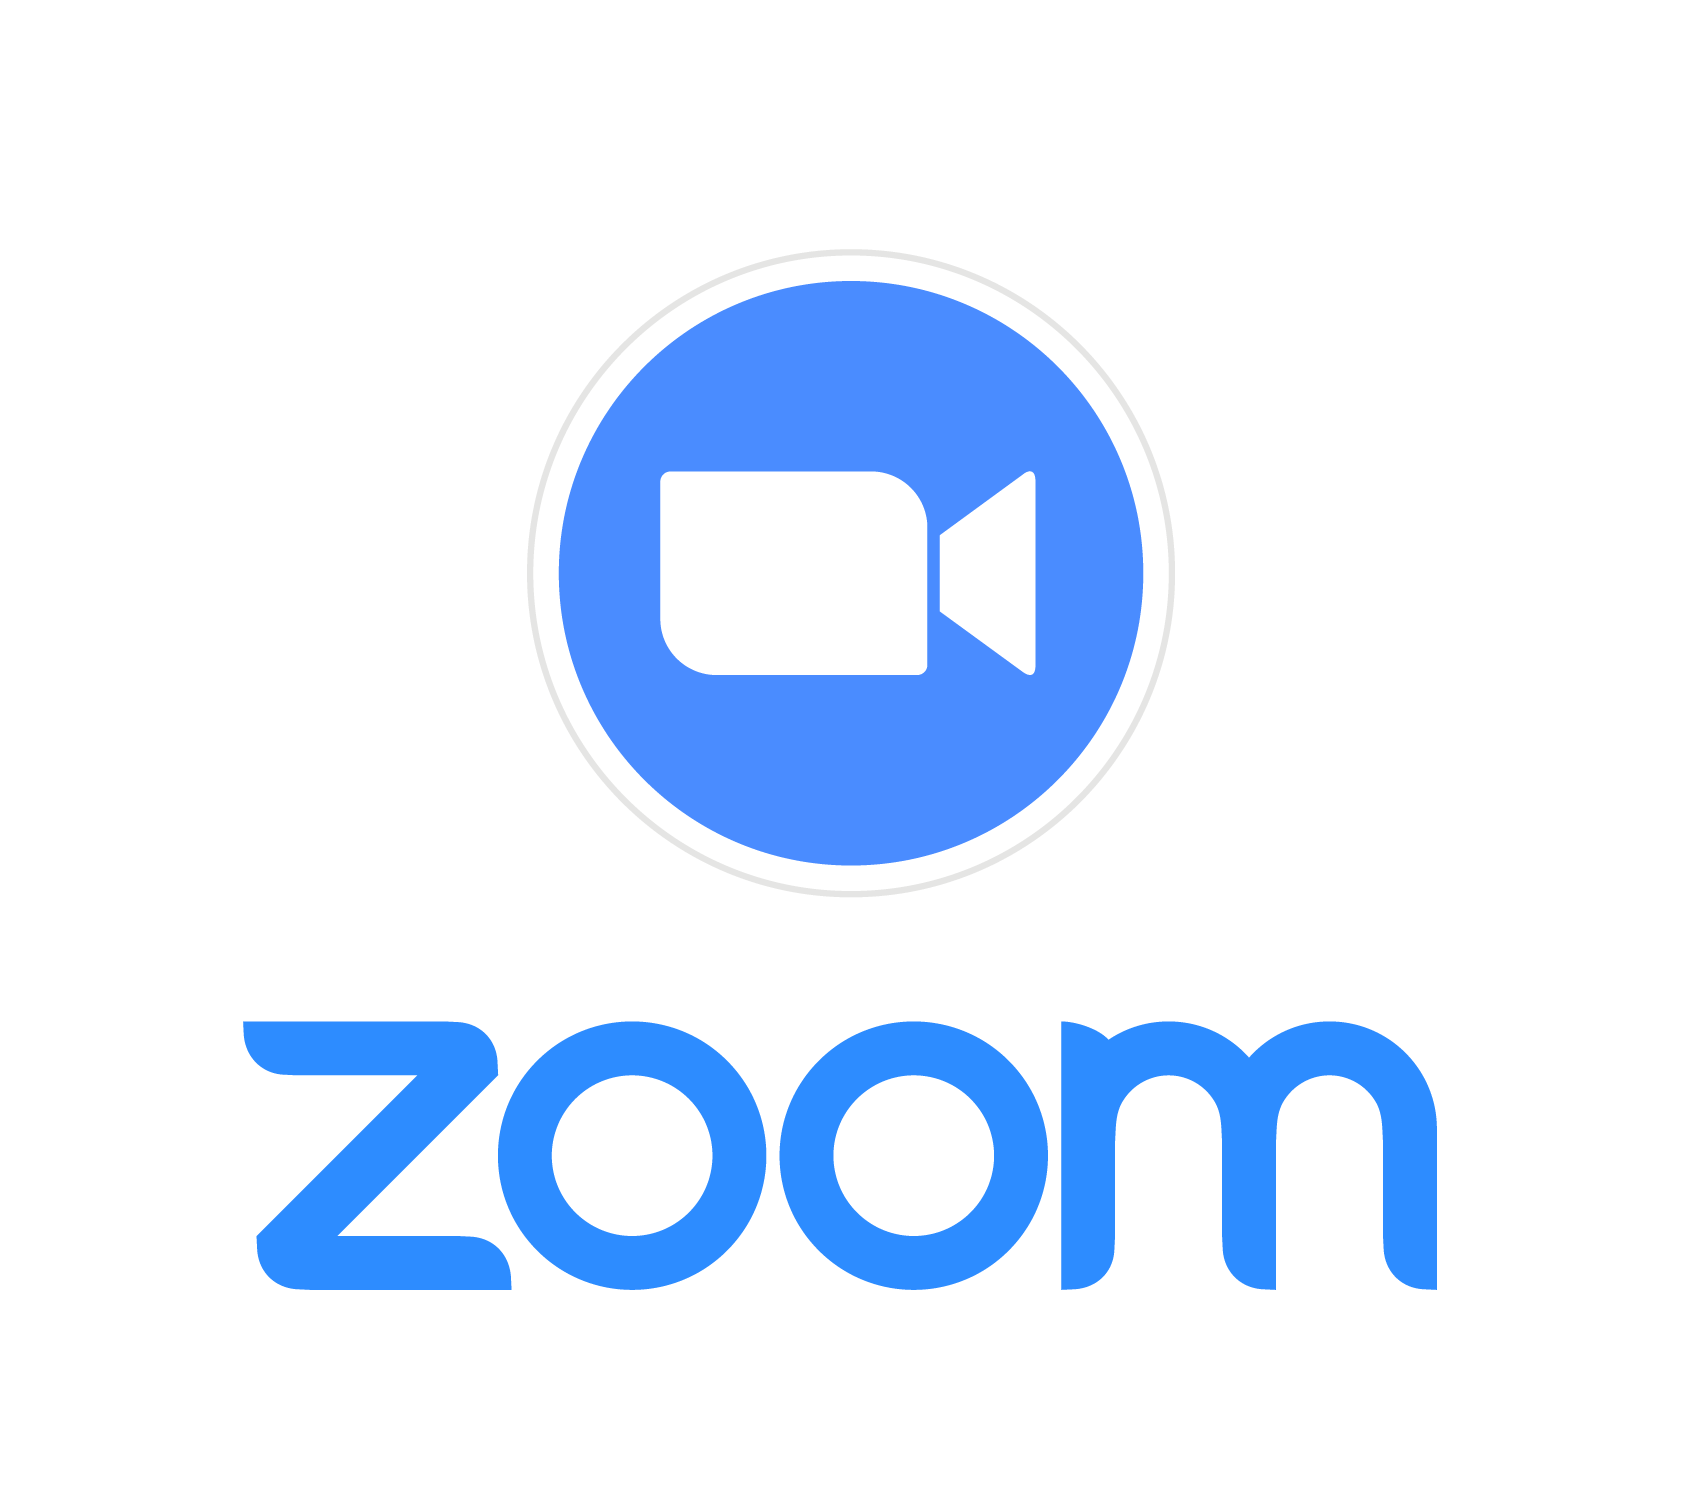 How to use Zoom?